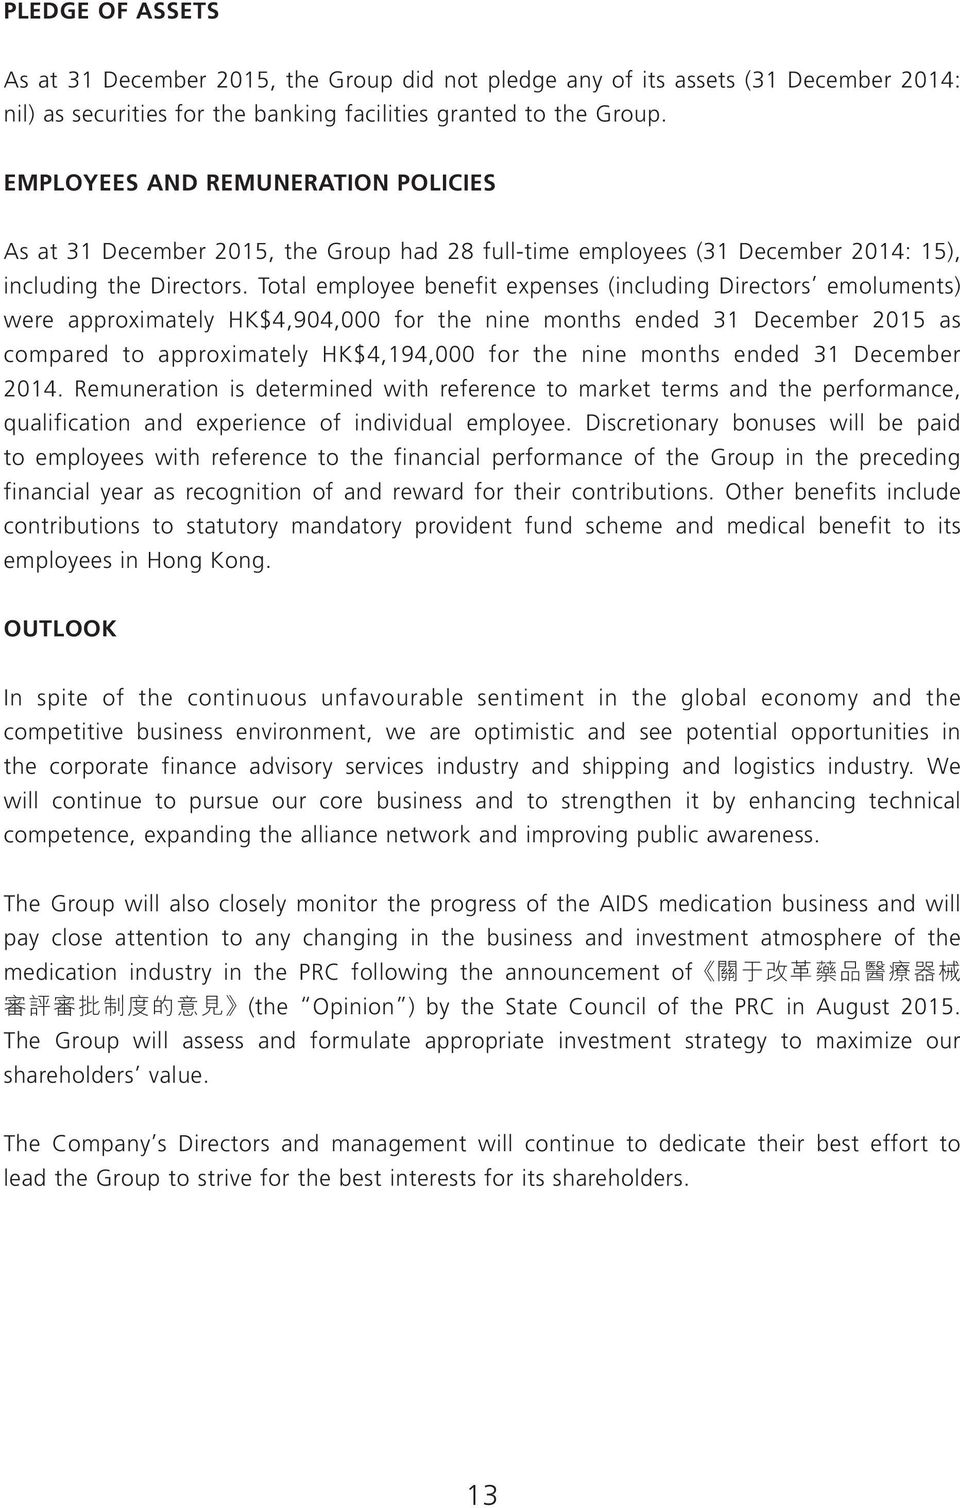 Total employee benefit expenses (including Directors emoluments) were approximately HK$4,904,000 for the nine months ended 2015 as compared to approximately HK$4,194,000 for the nine months ended